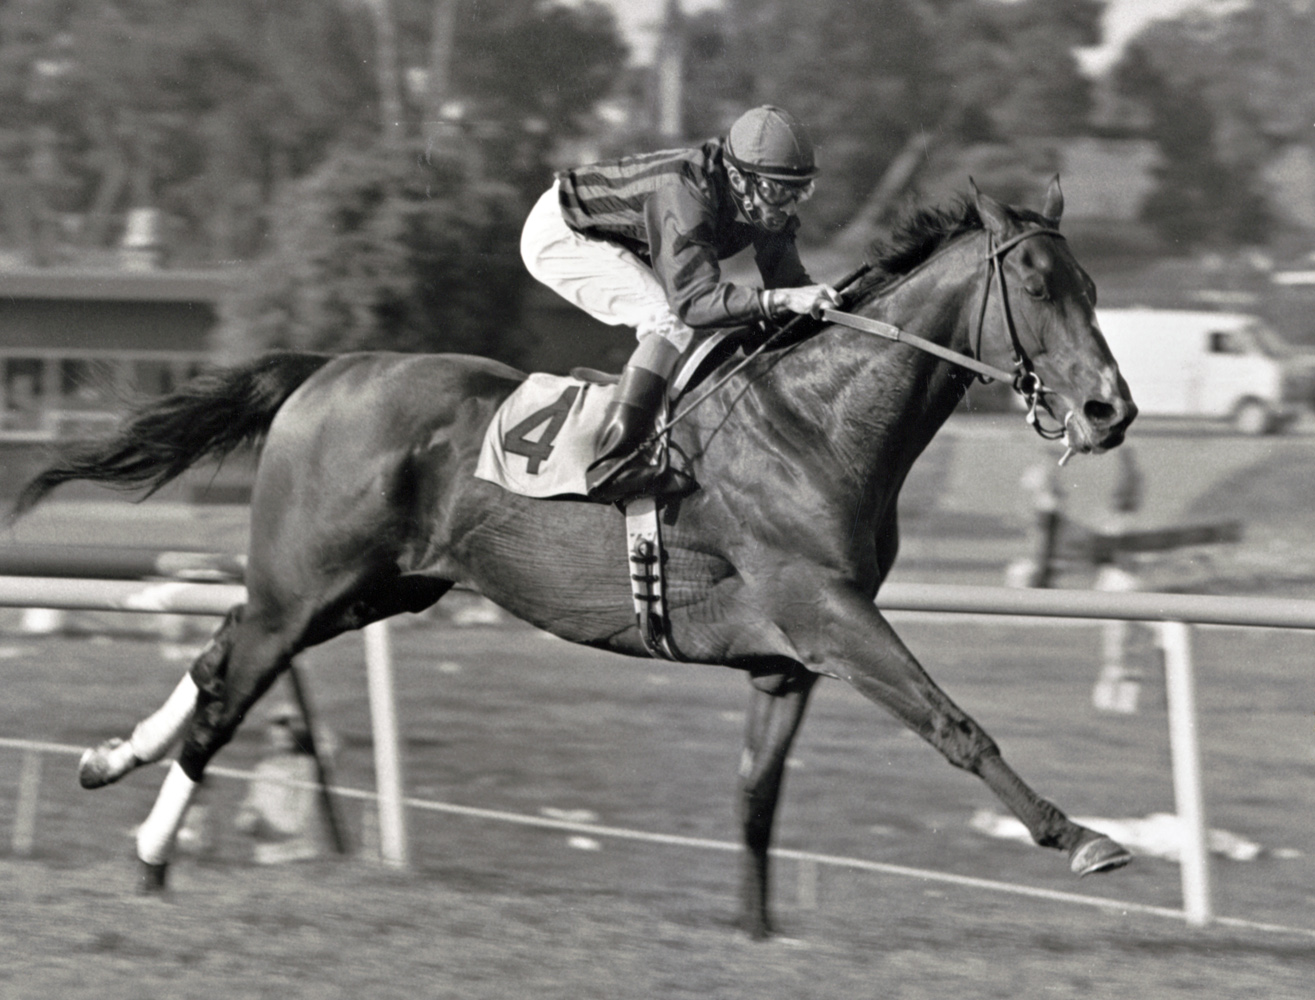 Manila (Fernando Toro up) winning the 1986 Cinema Handicap at Hollywood Park (Keeneland Library Thoroughbred Times Collection)